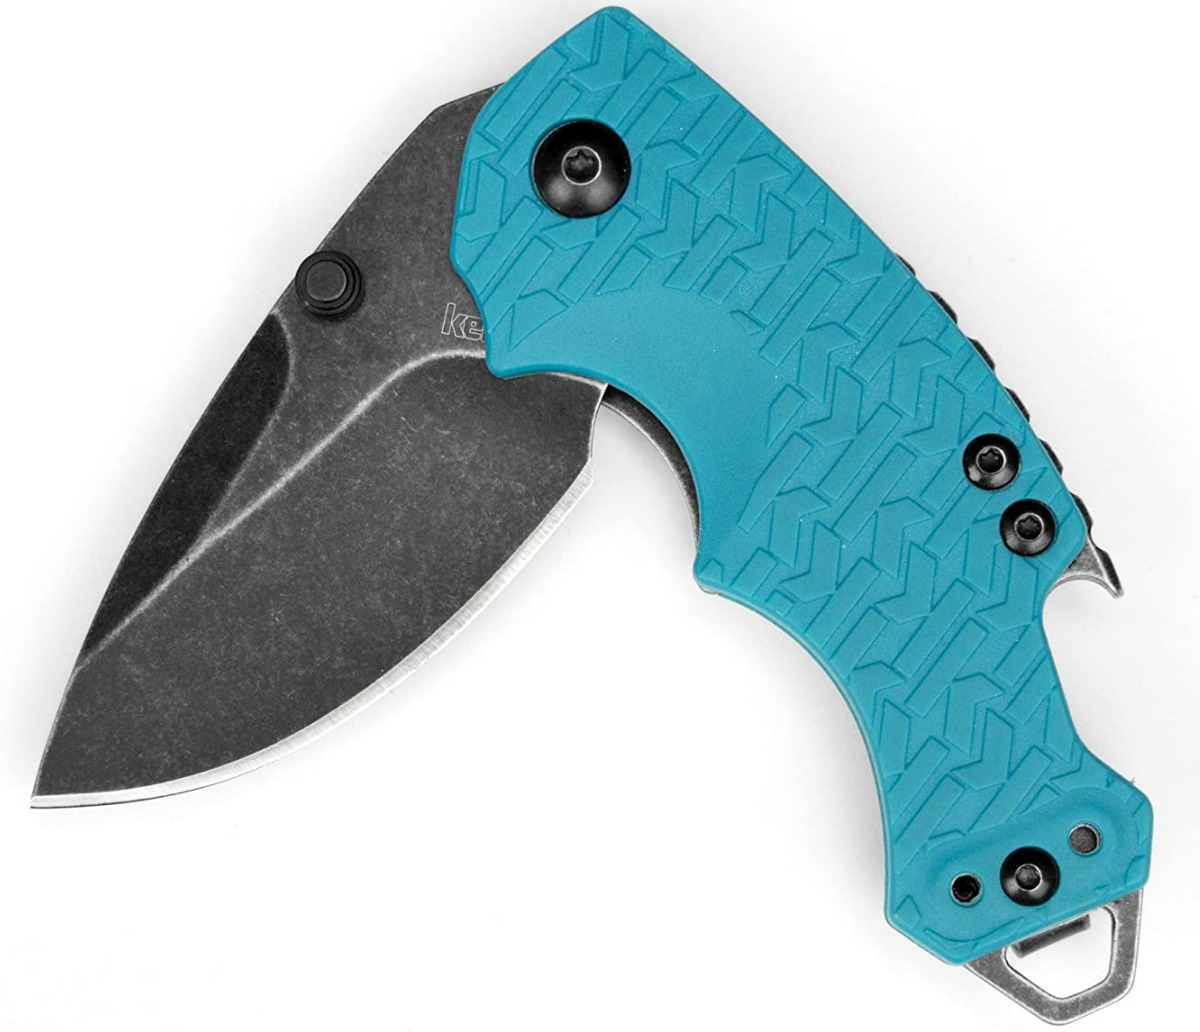 Teal colored pocket knife partially open